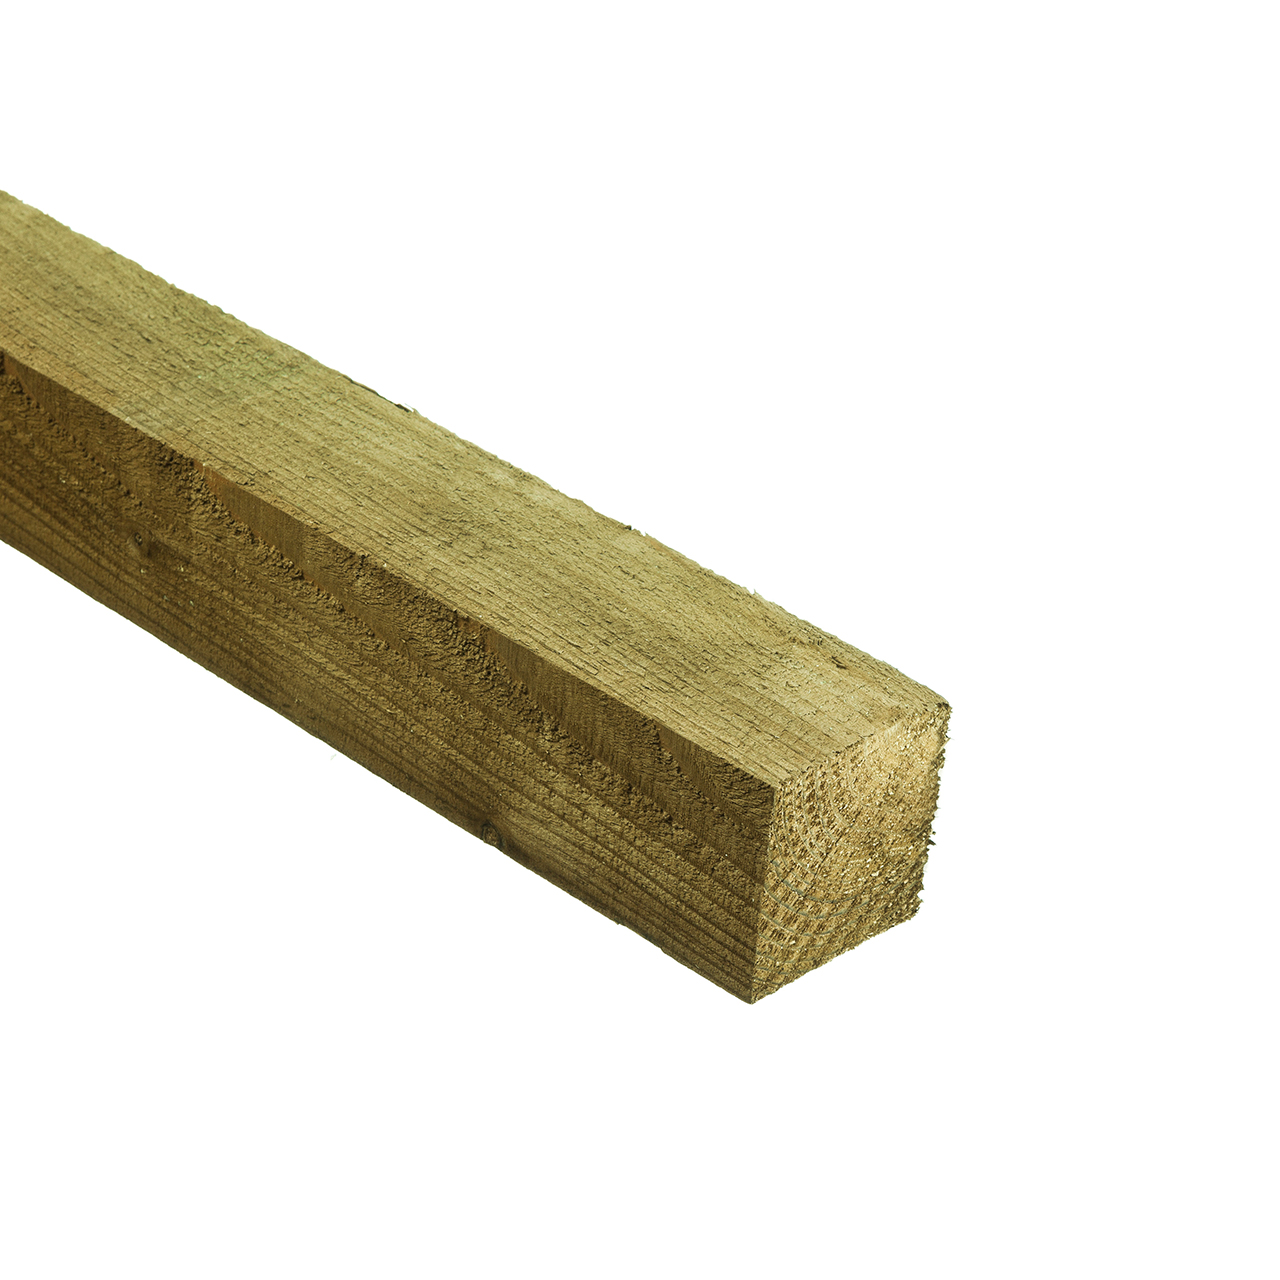 Fence Post Green Treated 75mm x 75mm x 2.4m image 0